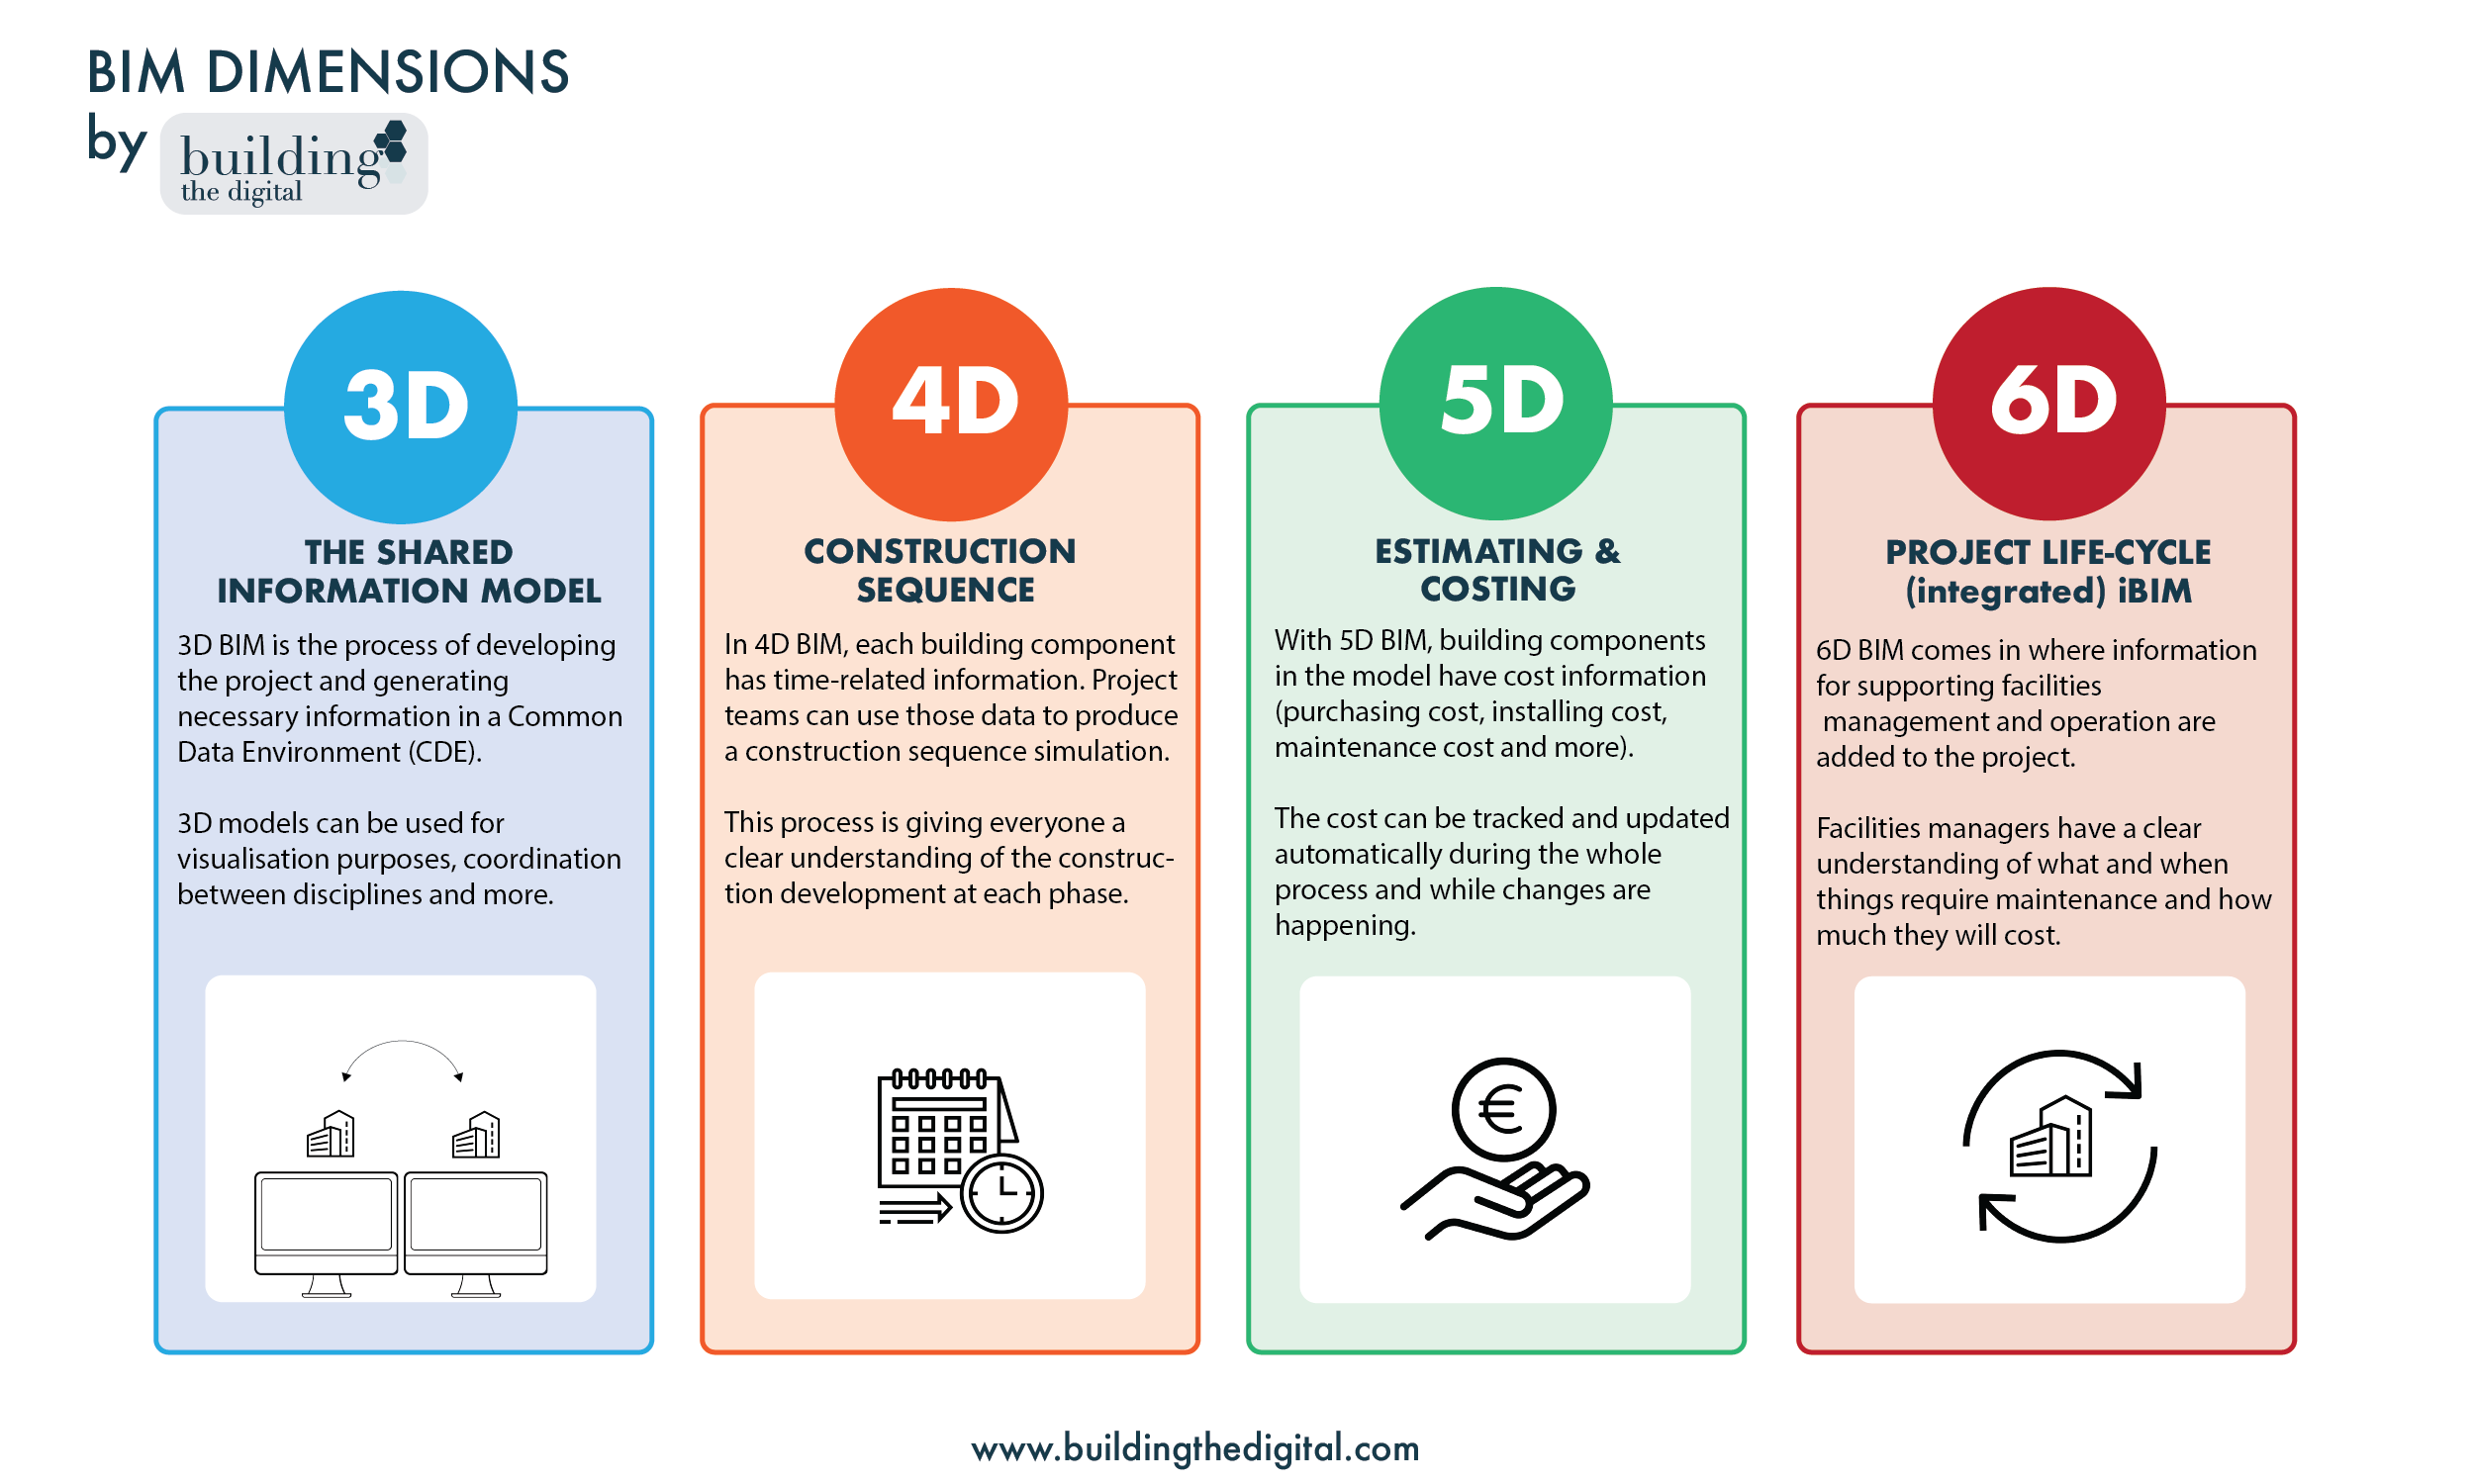 BIM dimensions infographic by building the digital: https://www.buildingthedigital.com/blog/bim-beginners